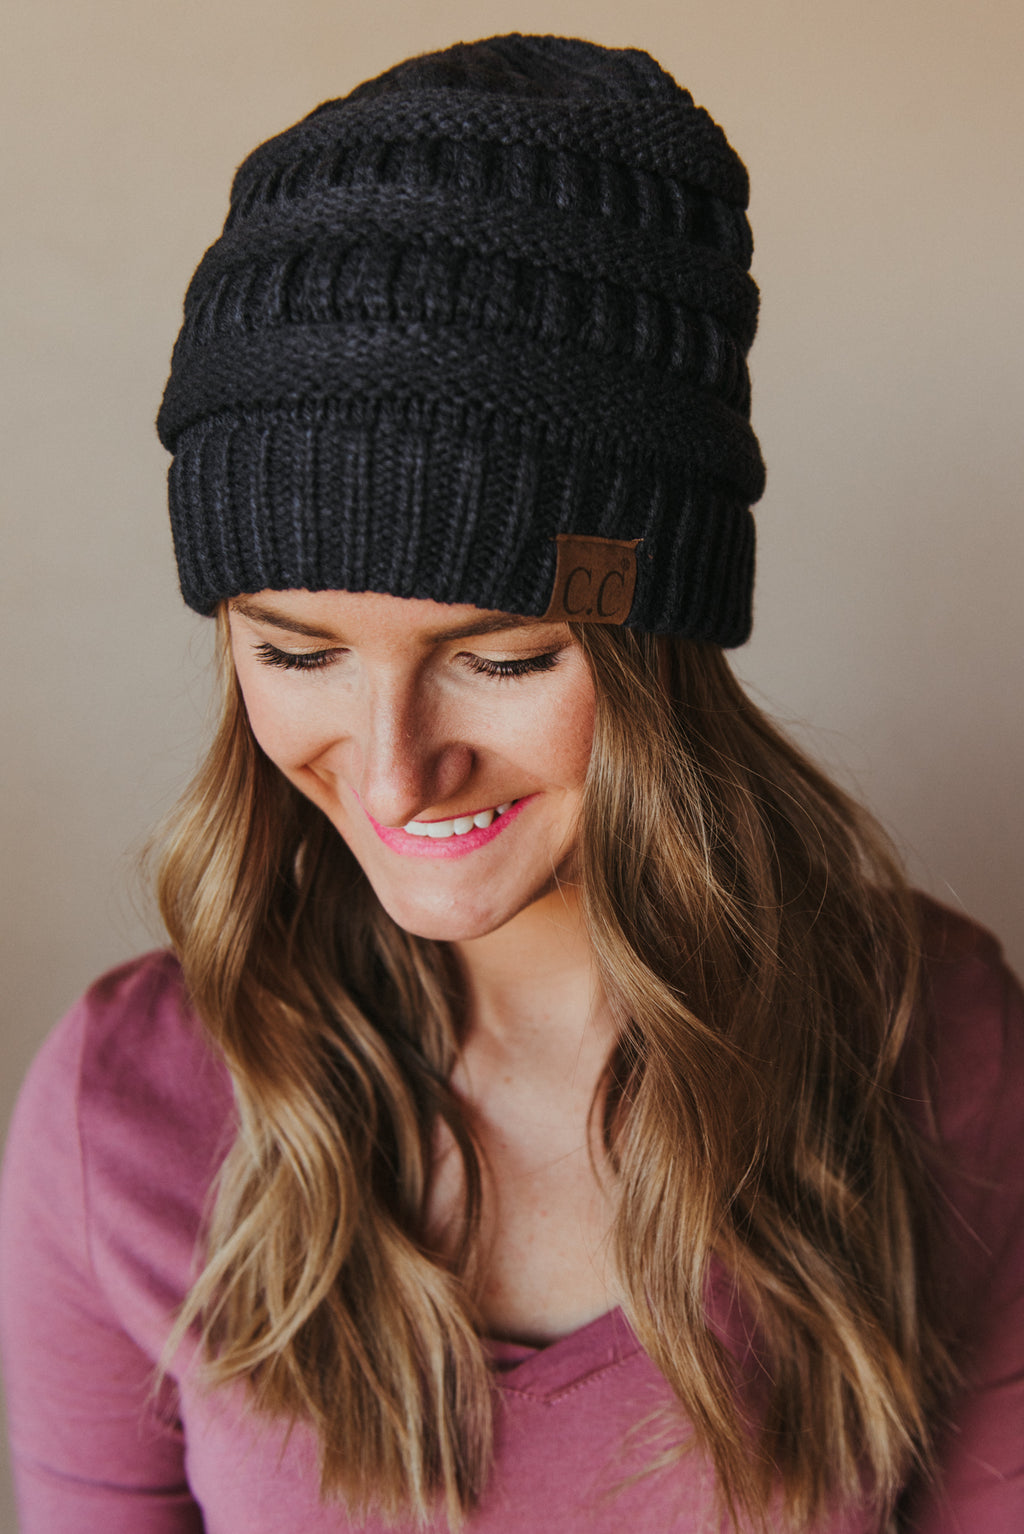 C.C Knitted Beanie ~ Navy - J. Lilly's Boutique